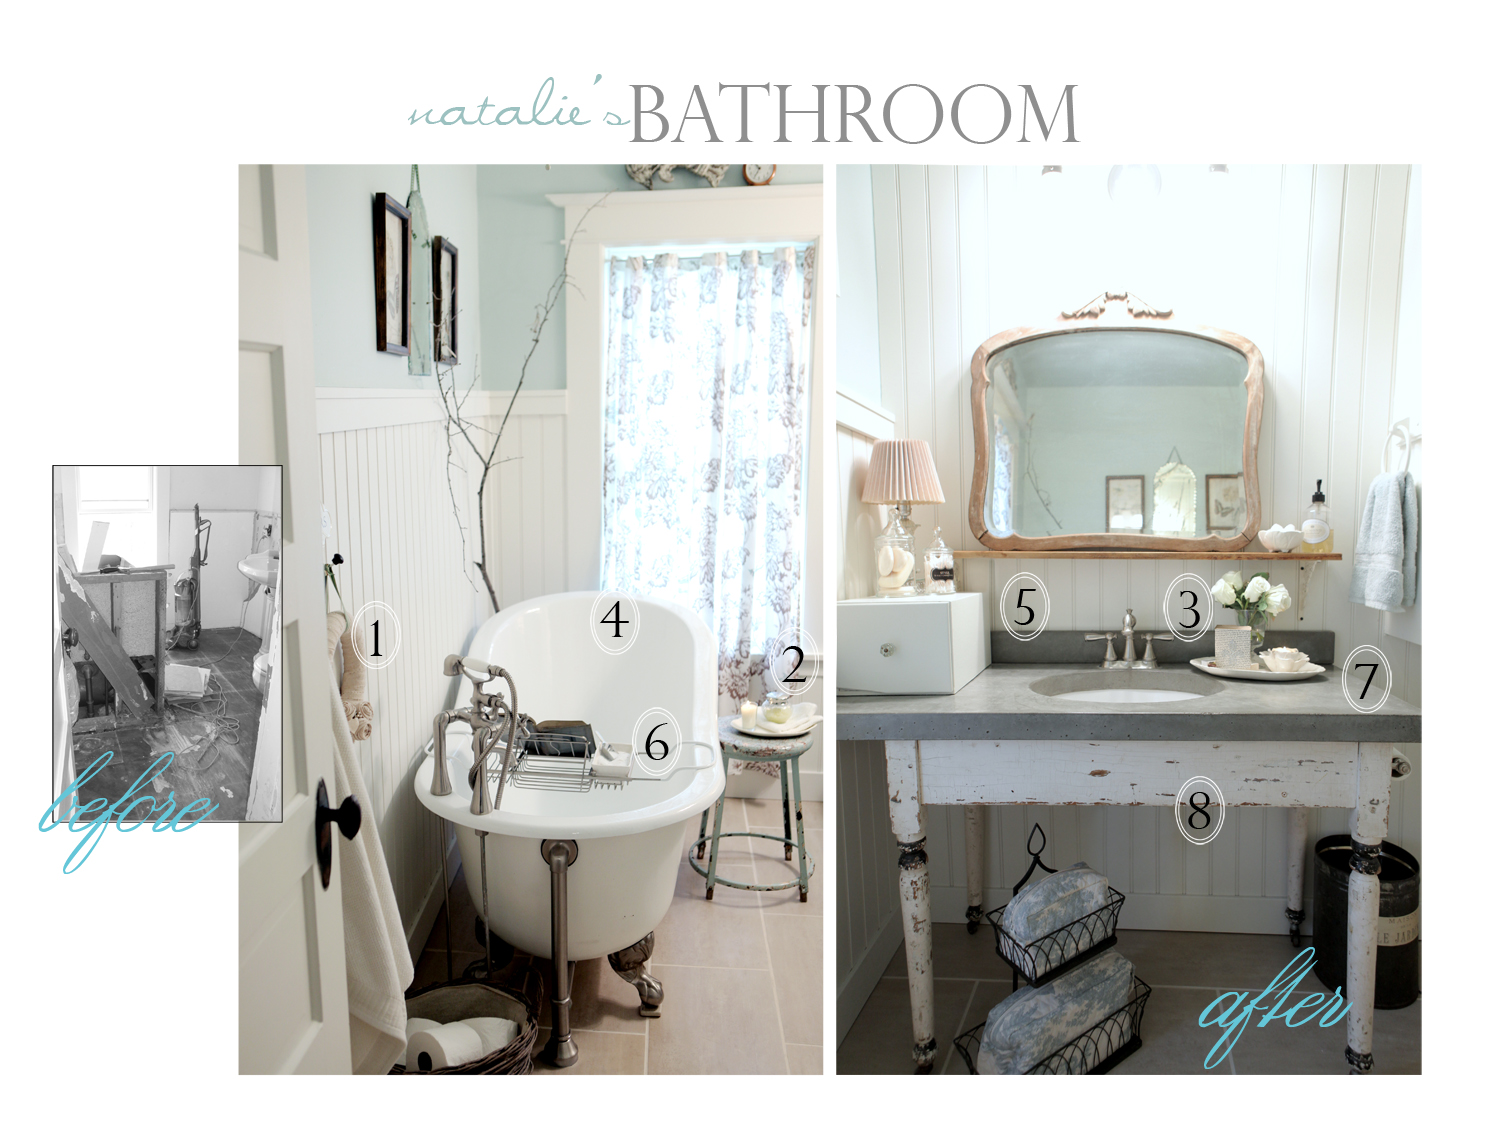 natalie's bath before & after 1500